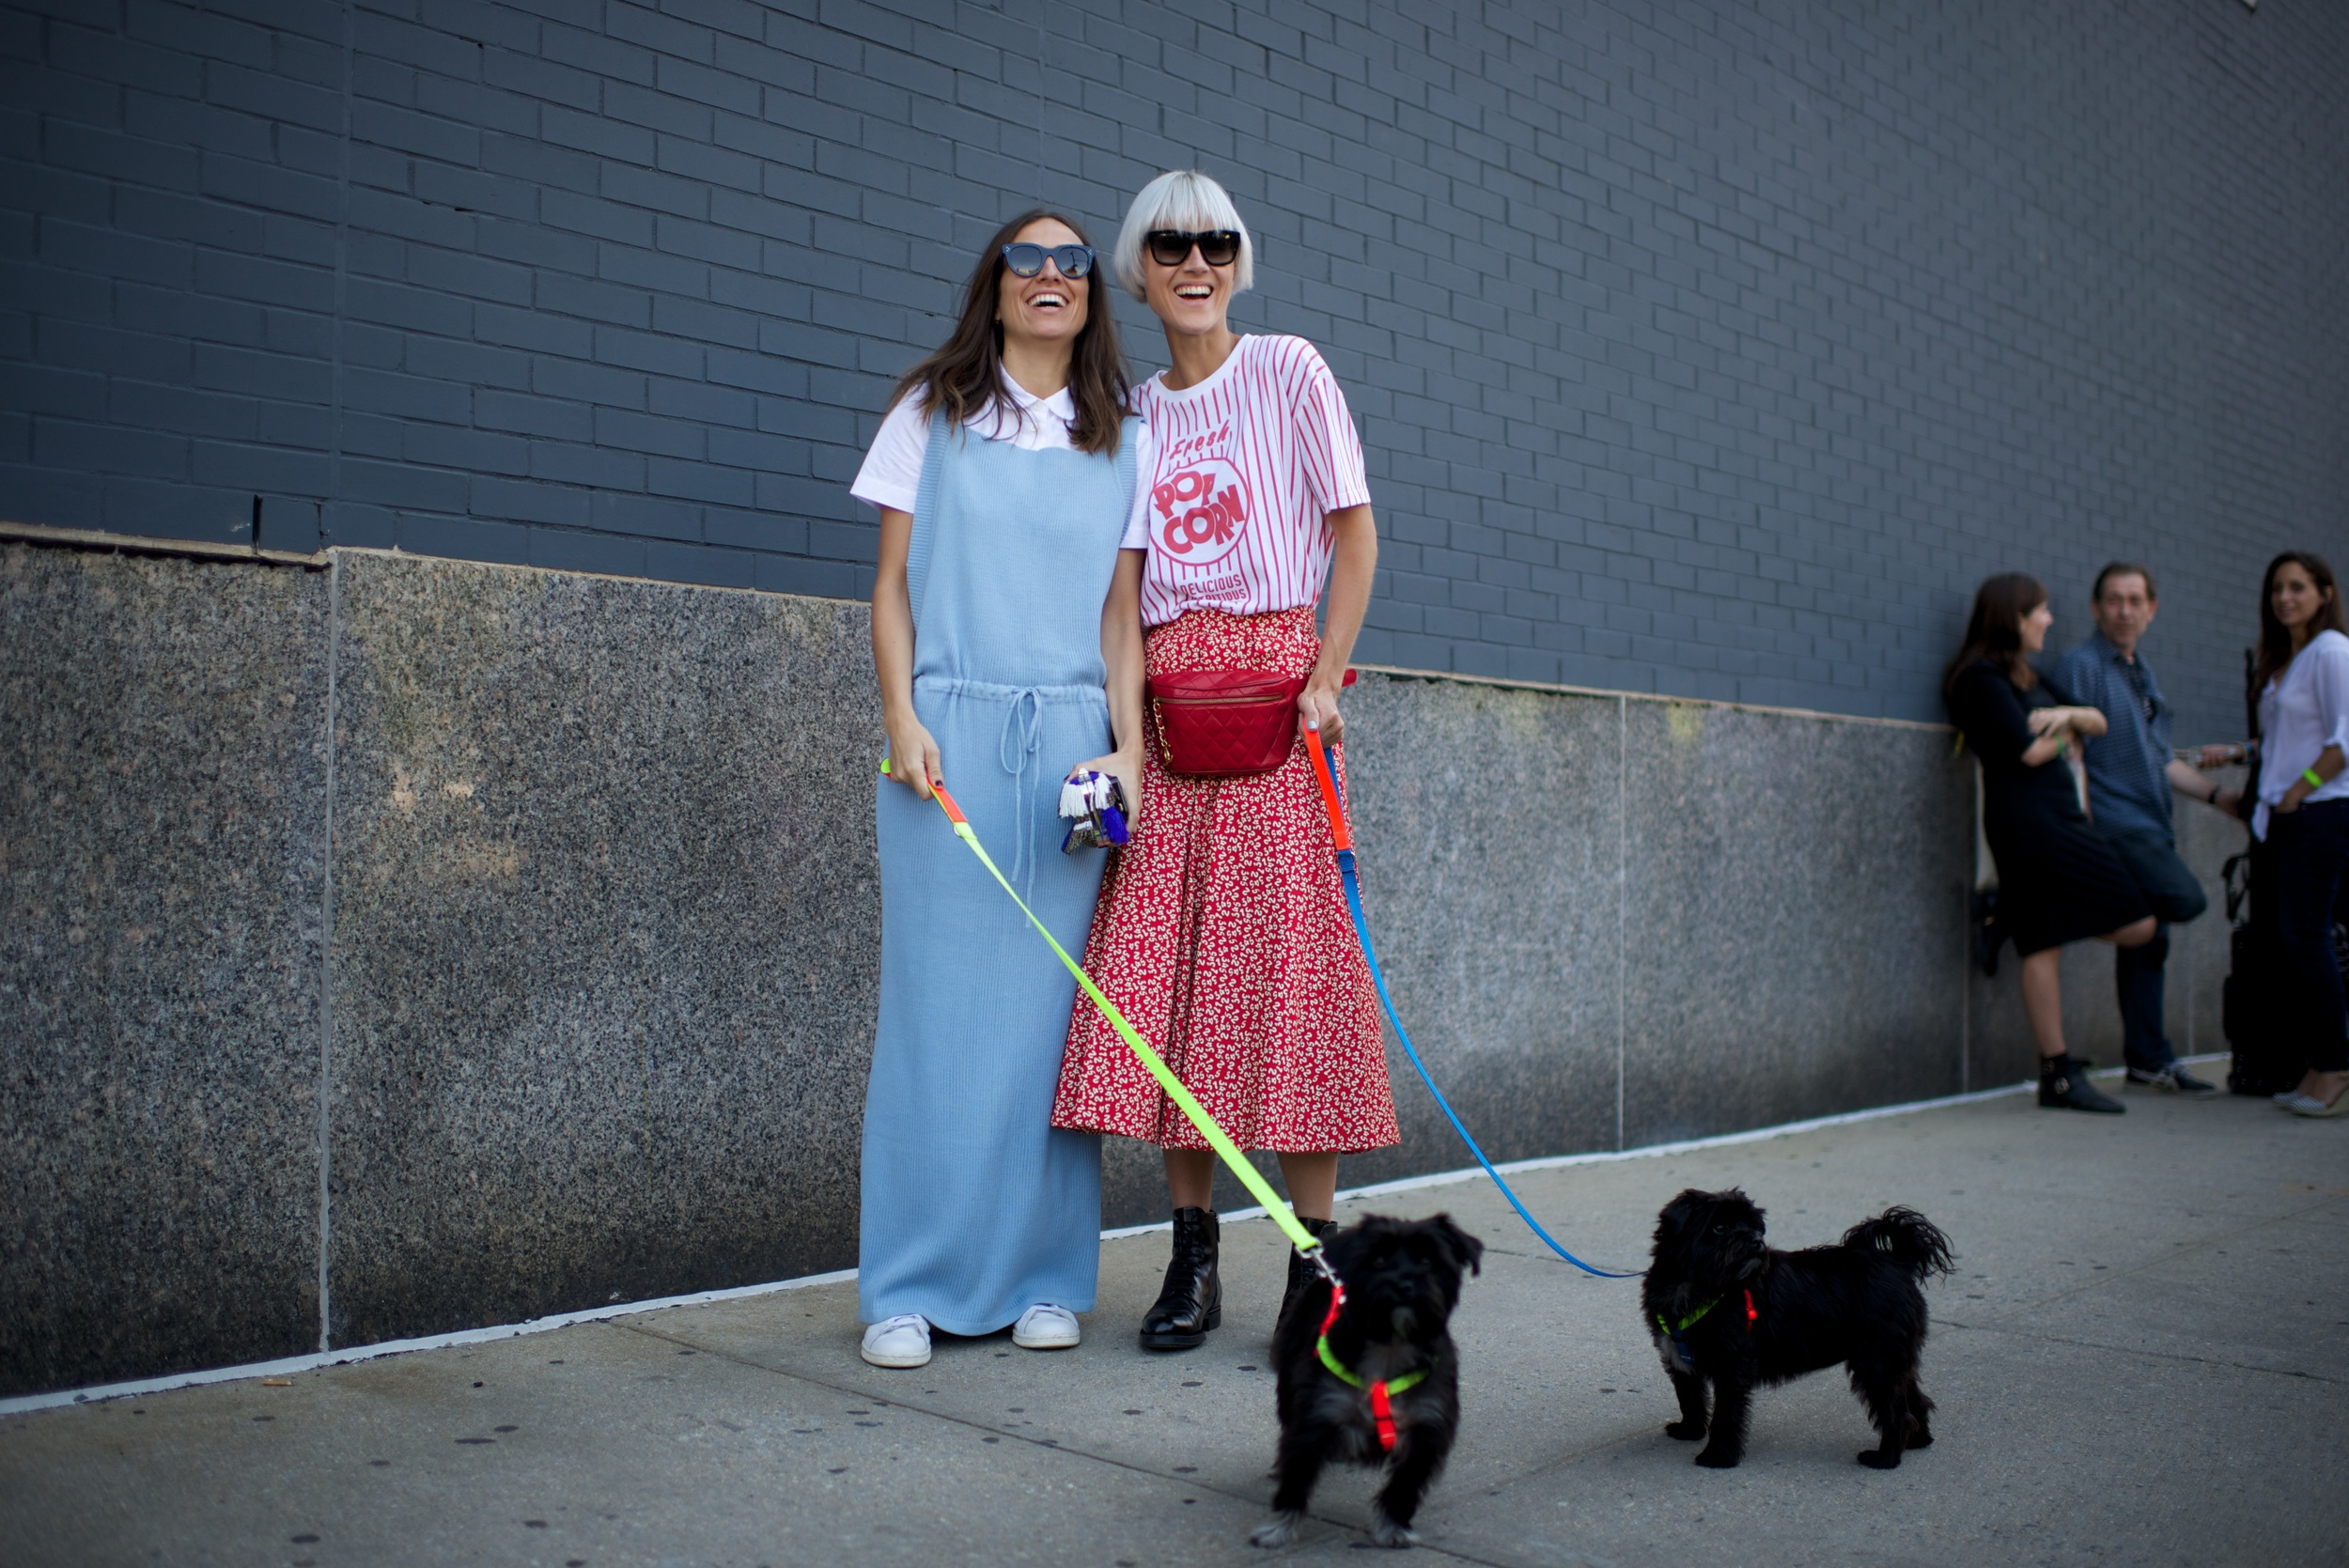 Sweet gals on street WARE OF THE DOG